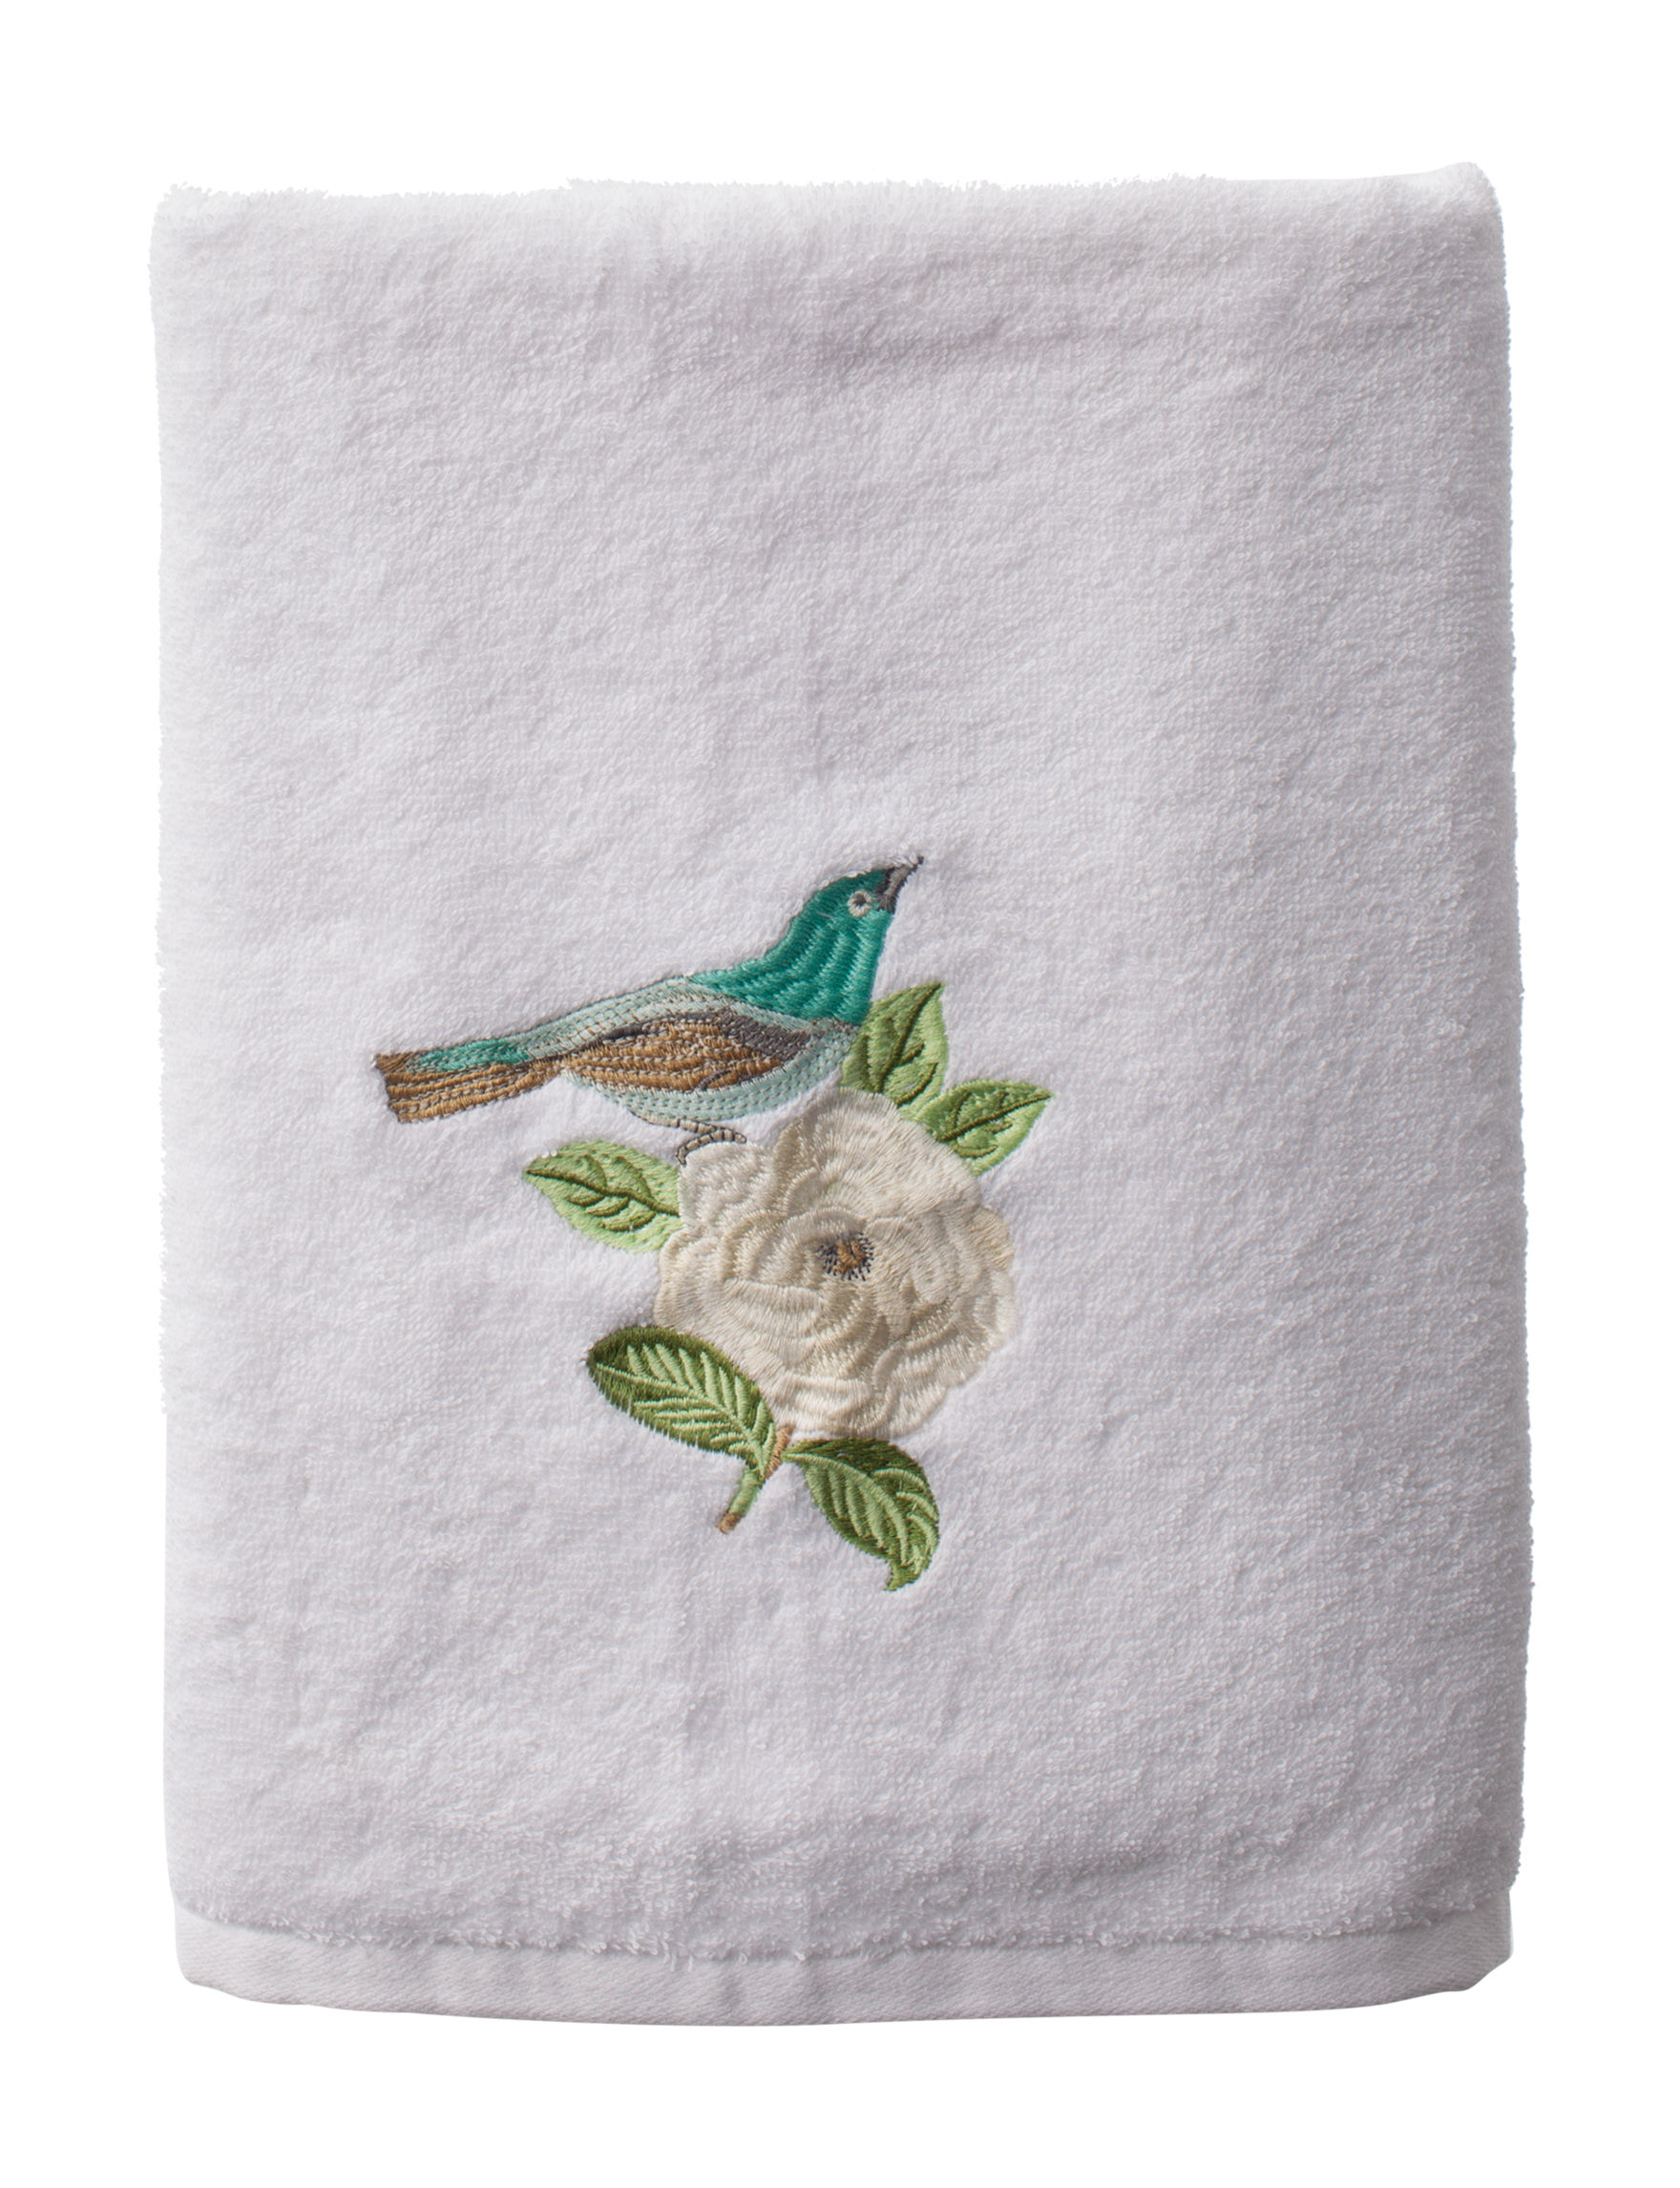 Avanti White Bath Towels Towels